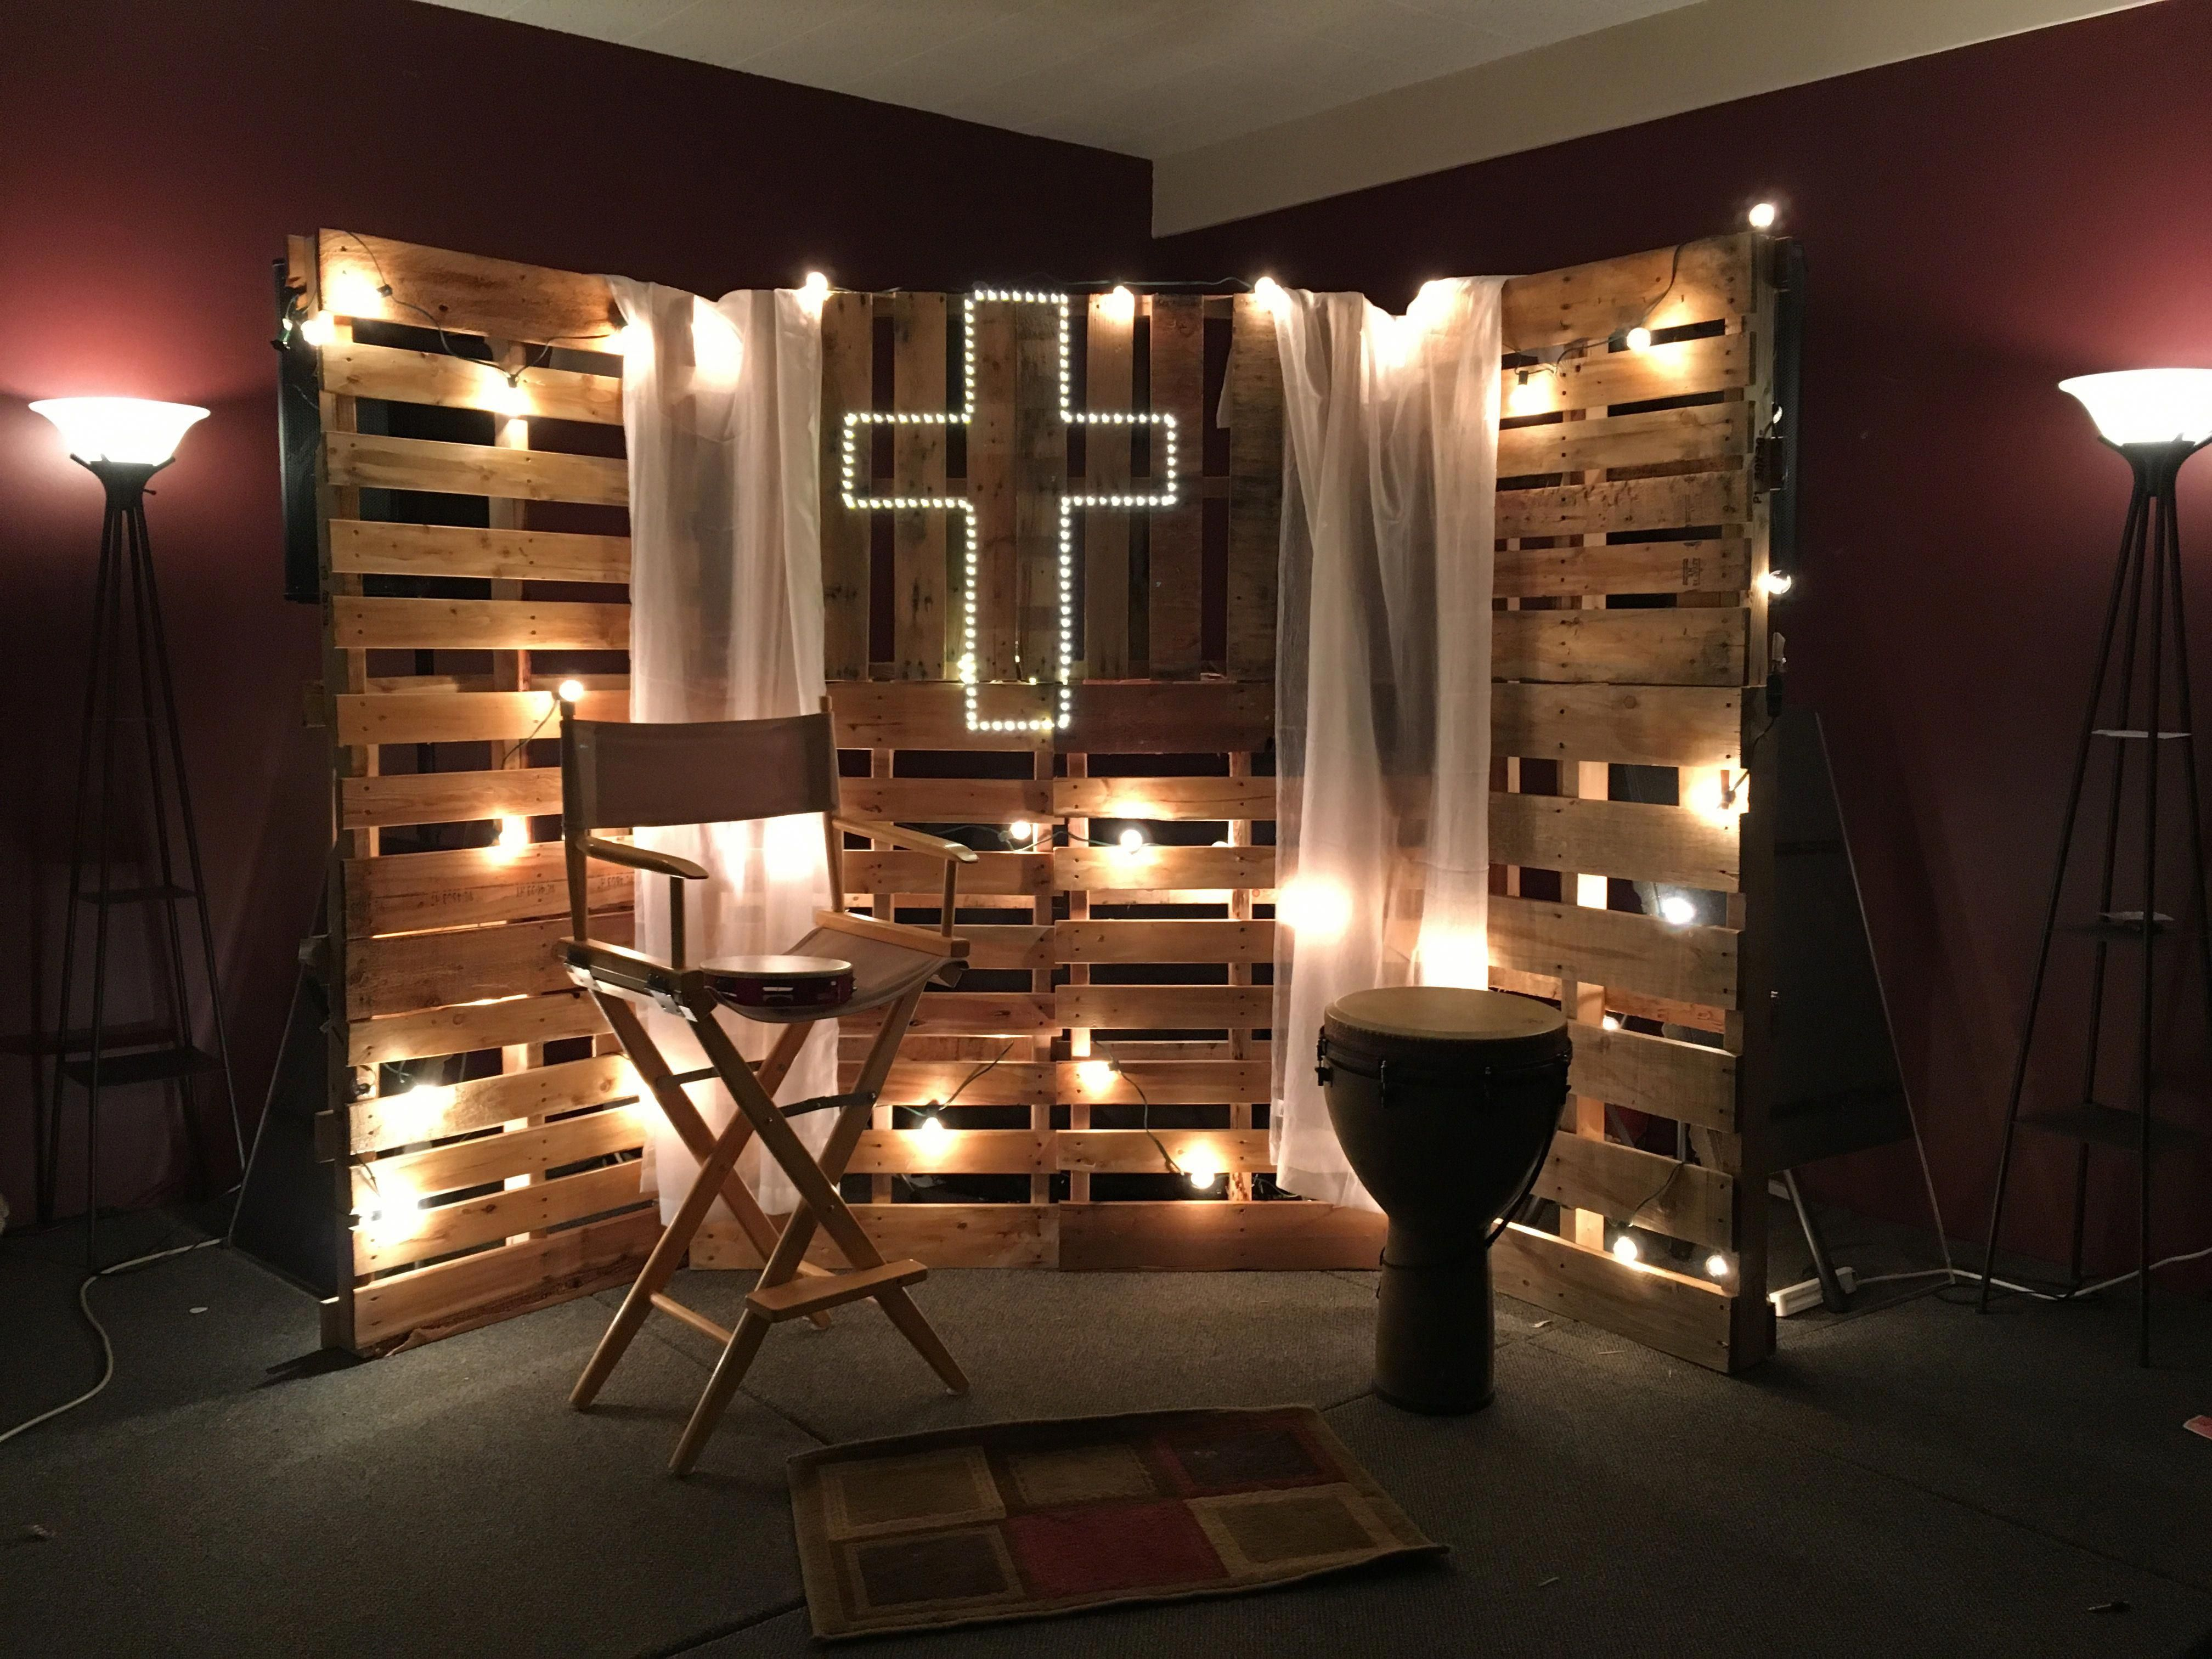 Youth Room Decor Pallet Boards Vintage Lights Sheer Curtains Sticker Lights Stage Decor Youth Room Church Youth Decor Youth Group Rooms